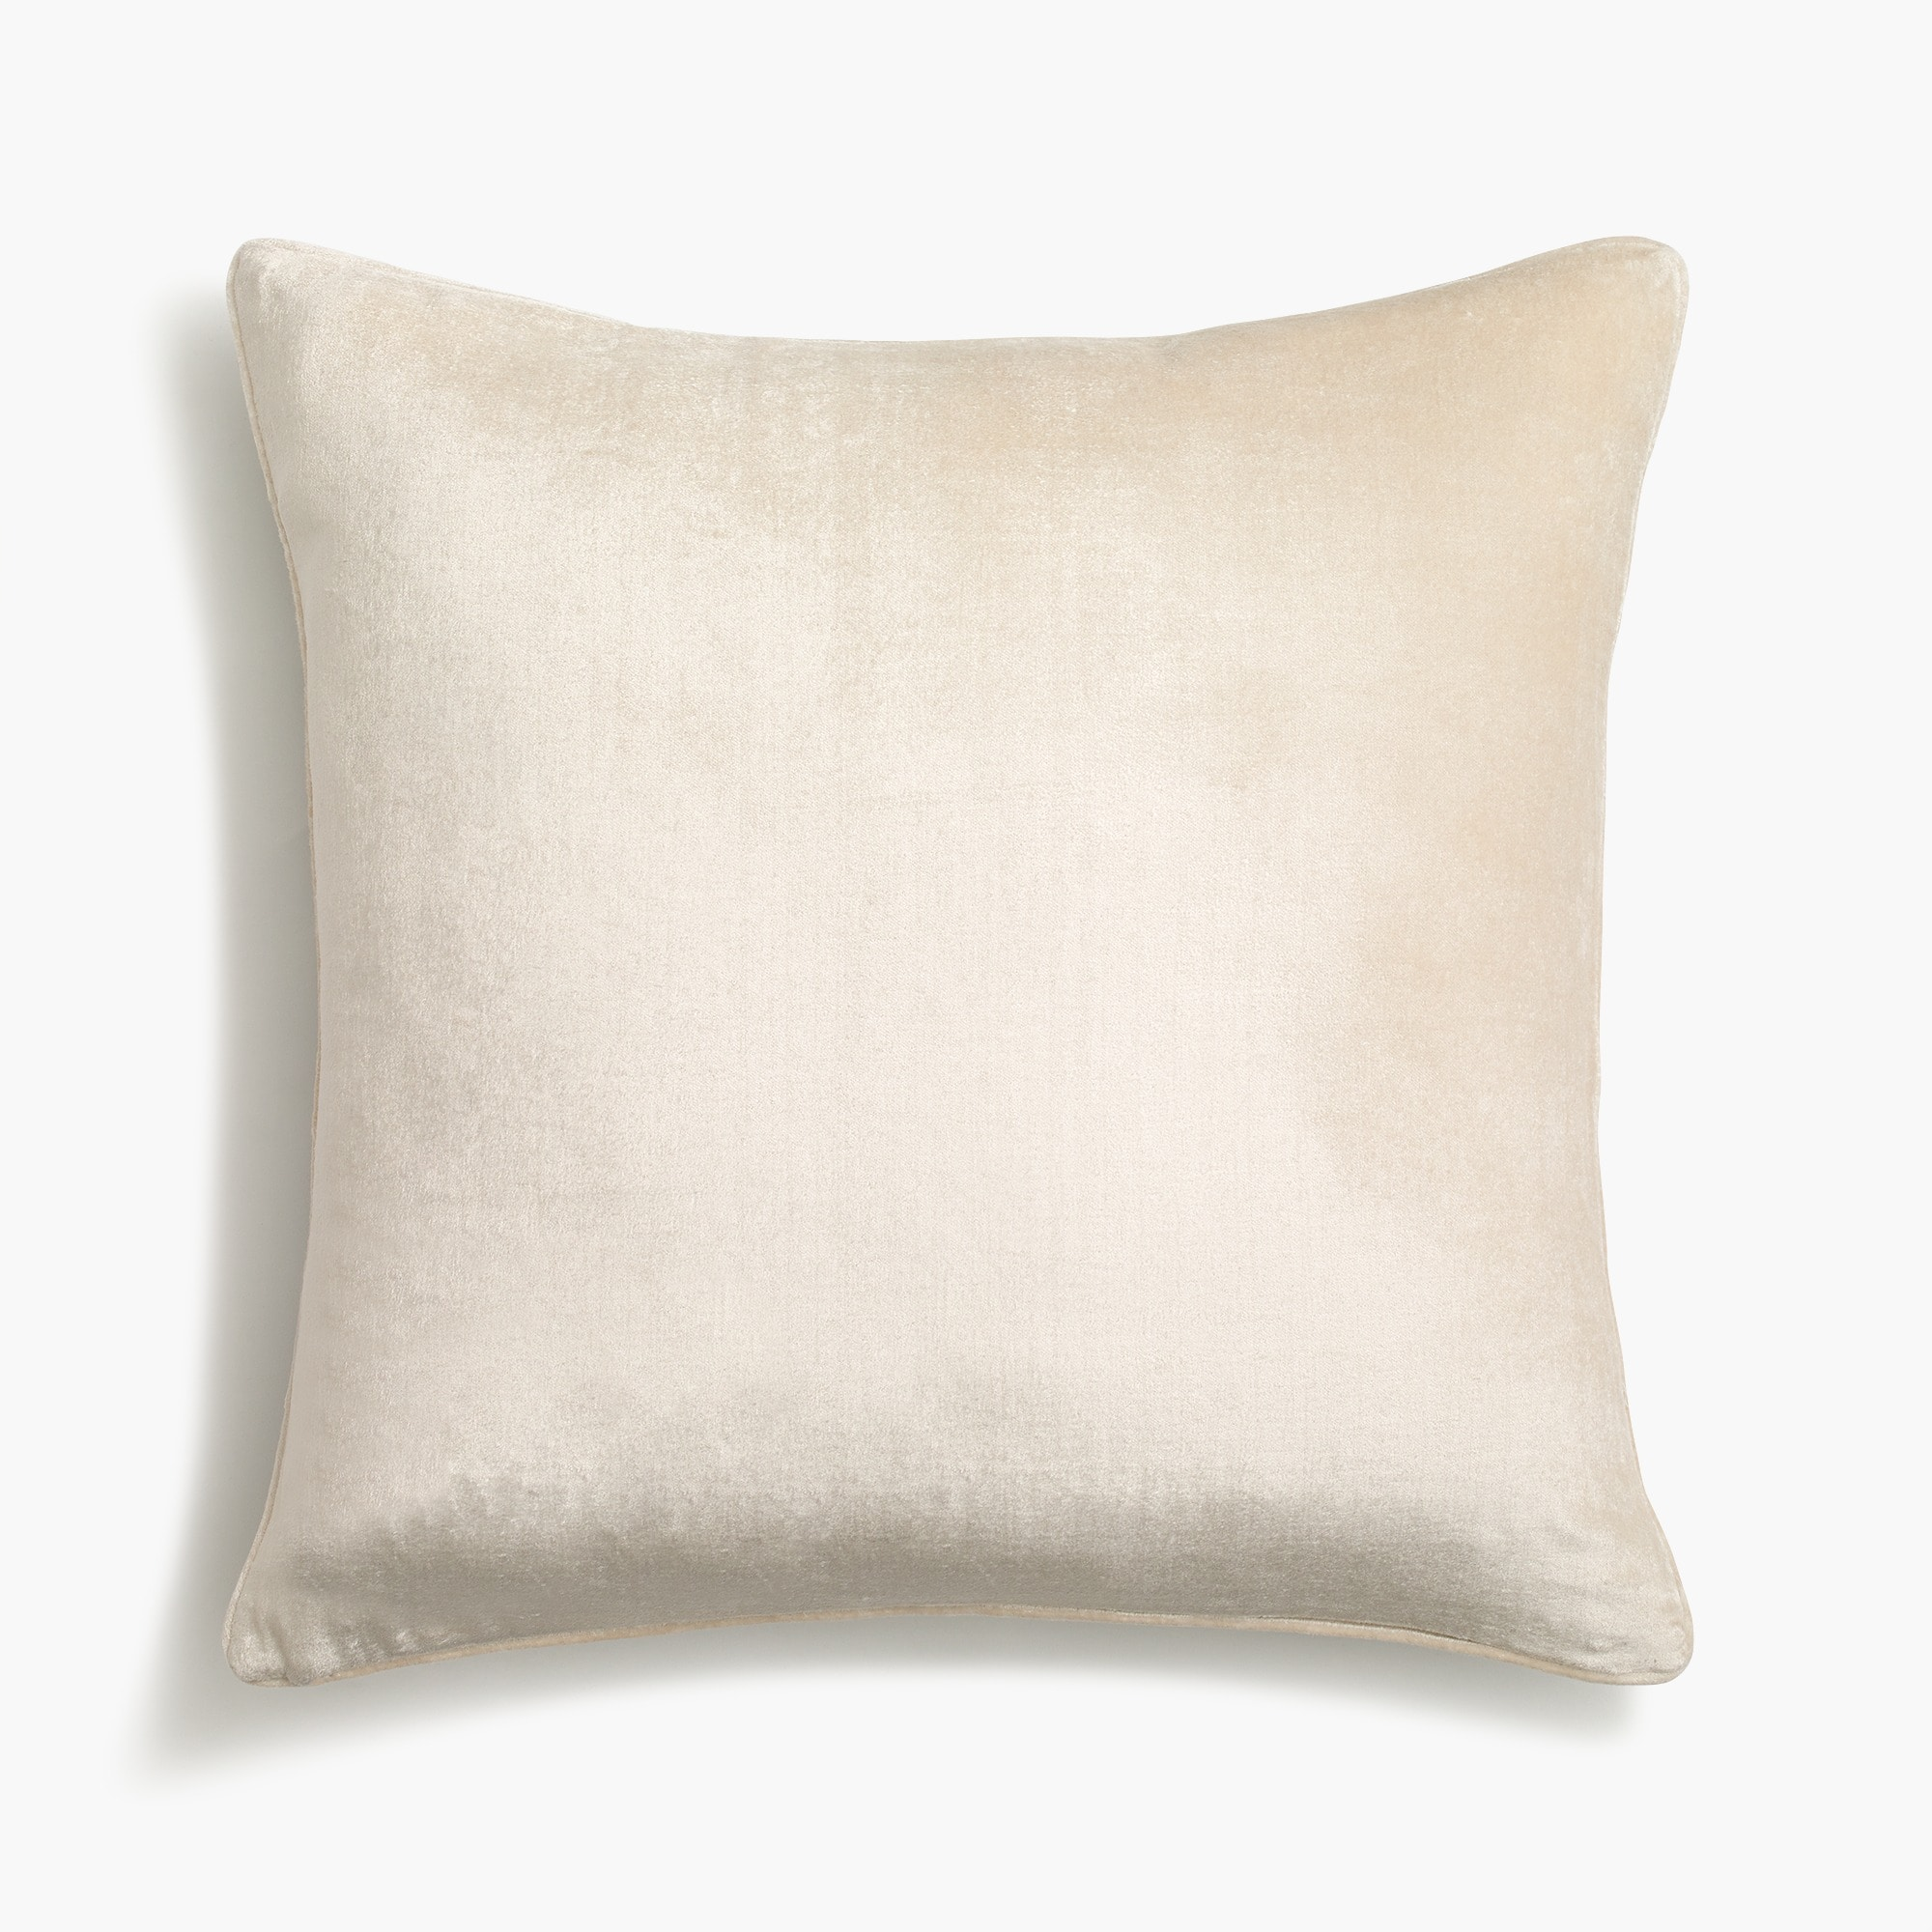 Image 4 for Compono geometric star pillow